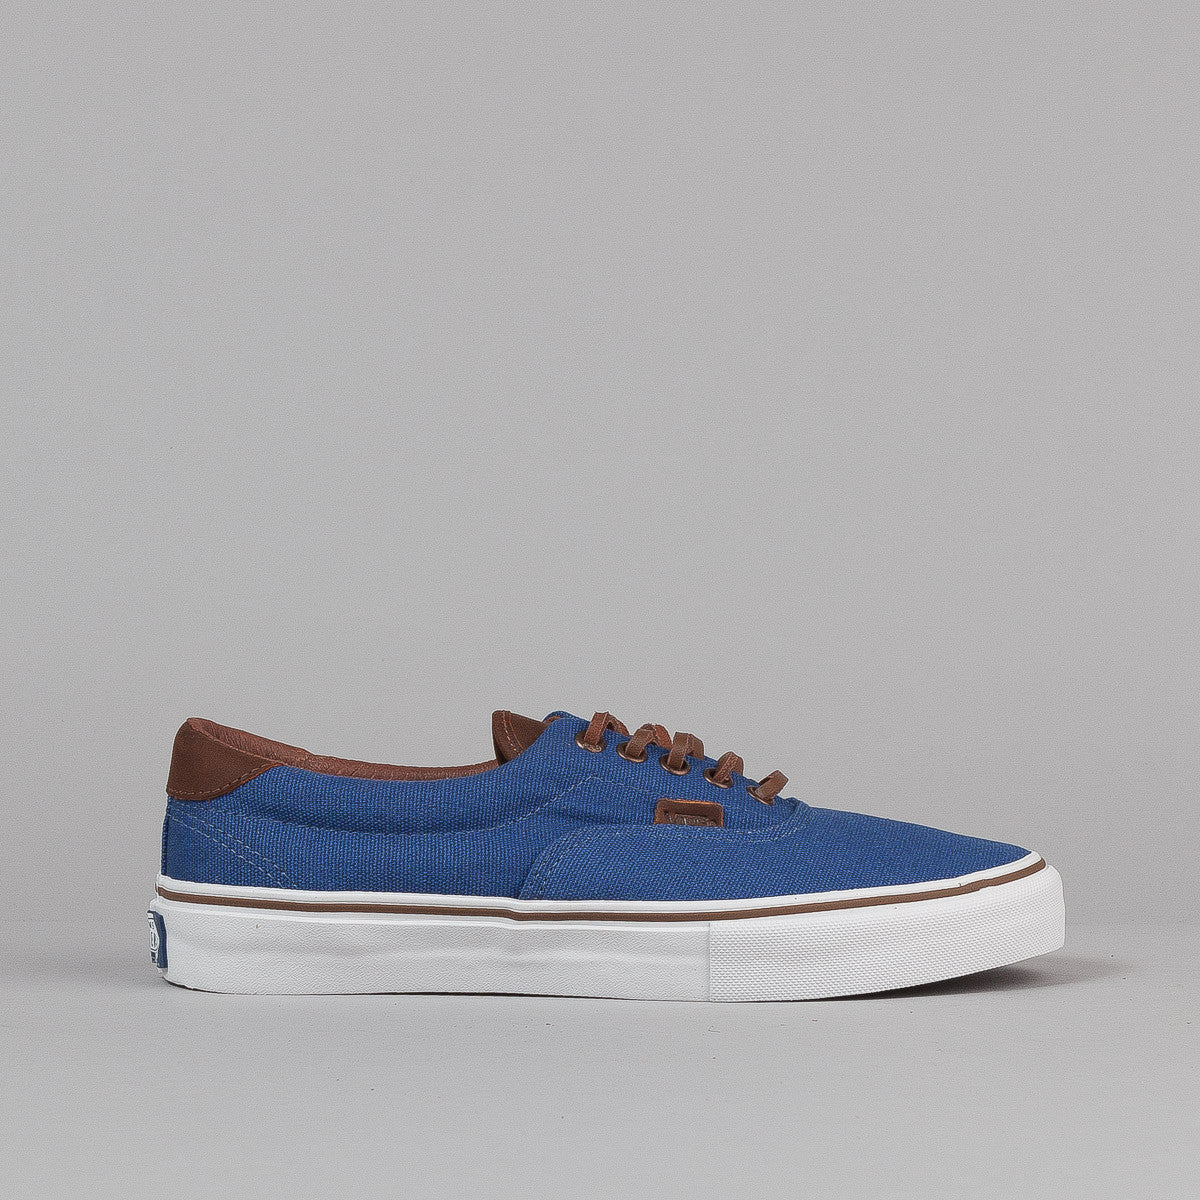 Vans Era 46 Pro Shoes